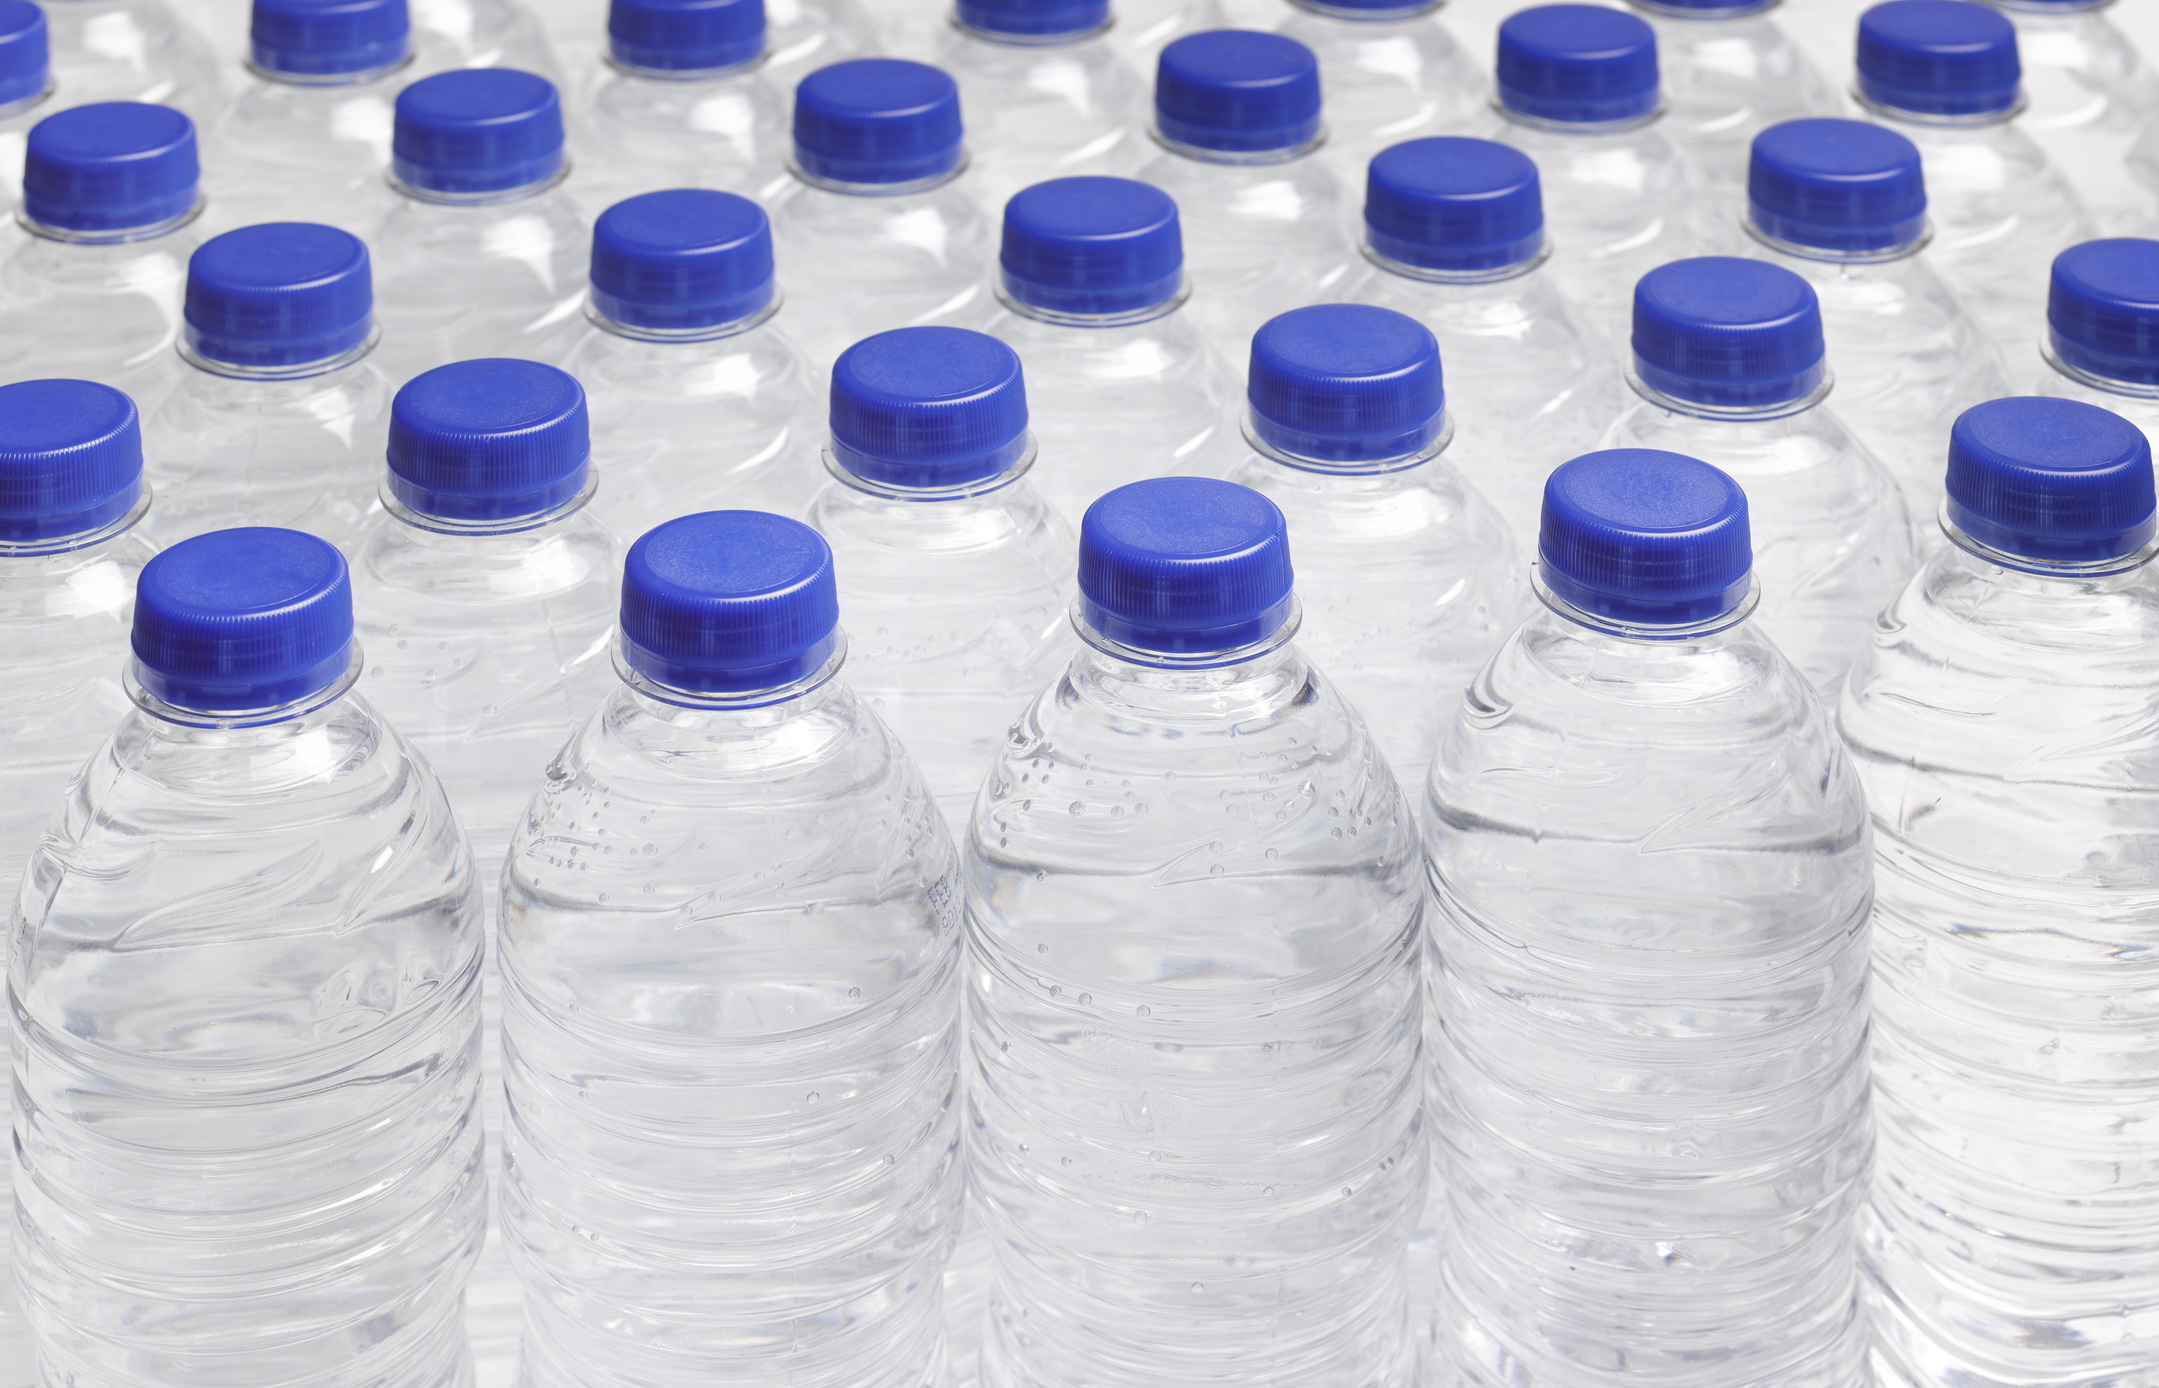 Should You Worry About Plastic Particles In Bottled Water? | Time